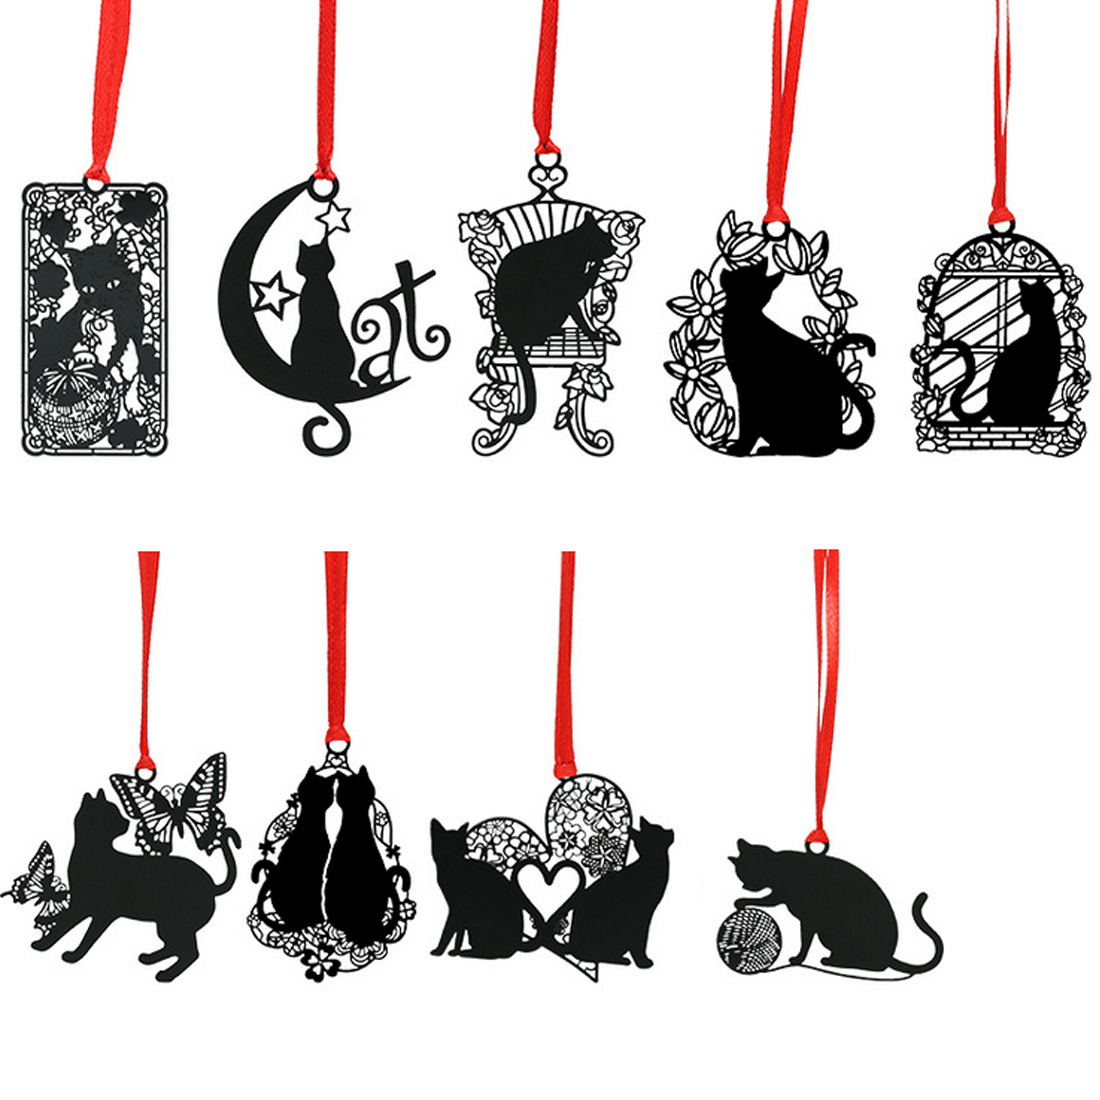 FangNymph Creative Black Cat Series Hollow Bookmarks Metal Sainless Steel Bookmark Lovely Student Stationery Gifts